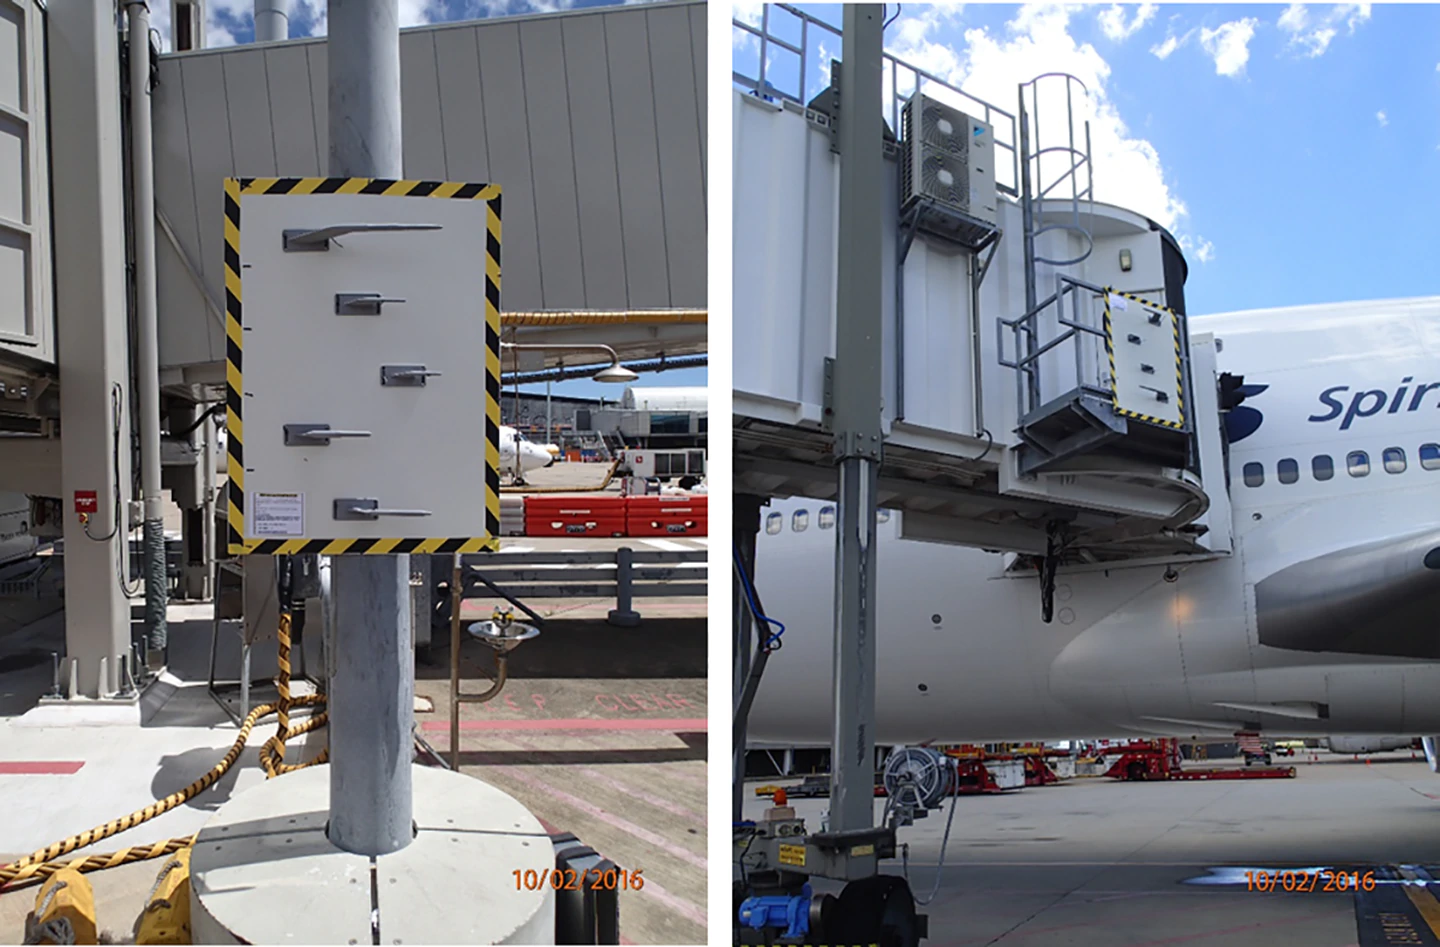 Brisbane airport has been studying the growing wasp problem. Photo / PLOS journal